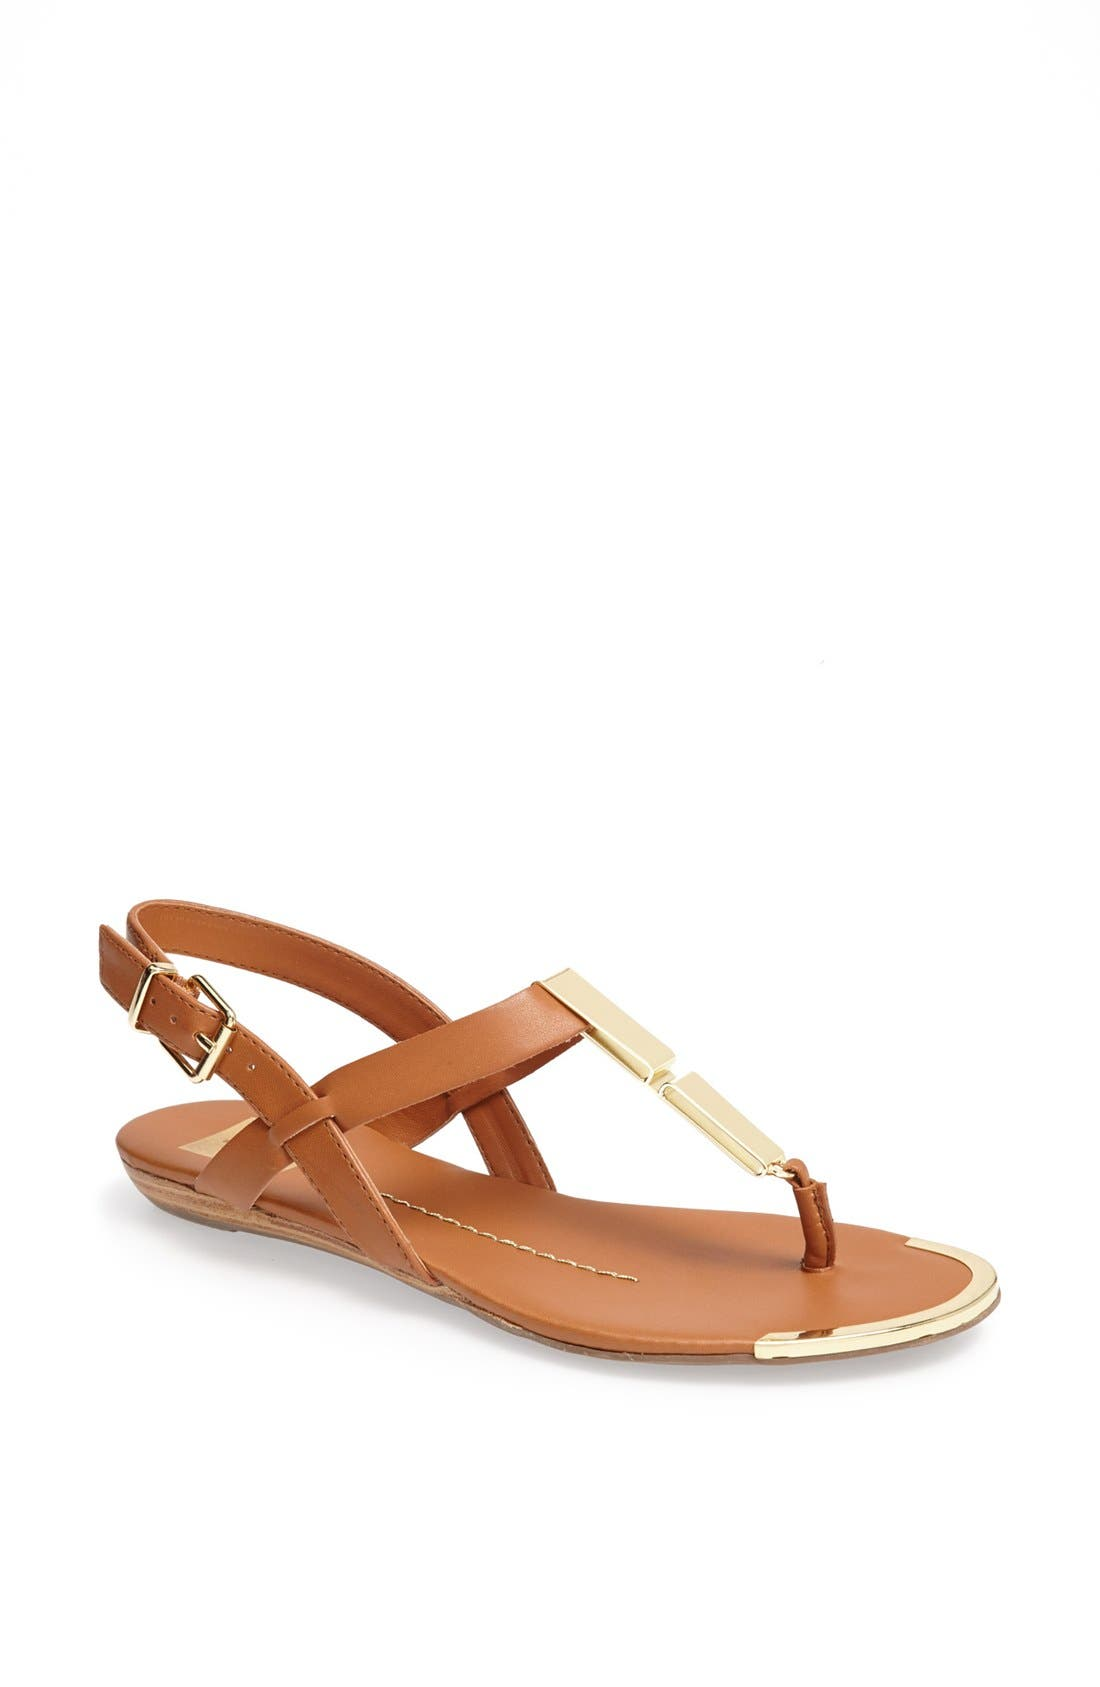 Alternate Image 1 Selected - DV by Dolce Vita 'Abley' Thong Sandal